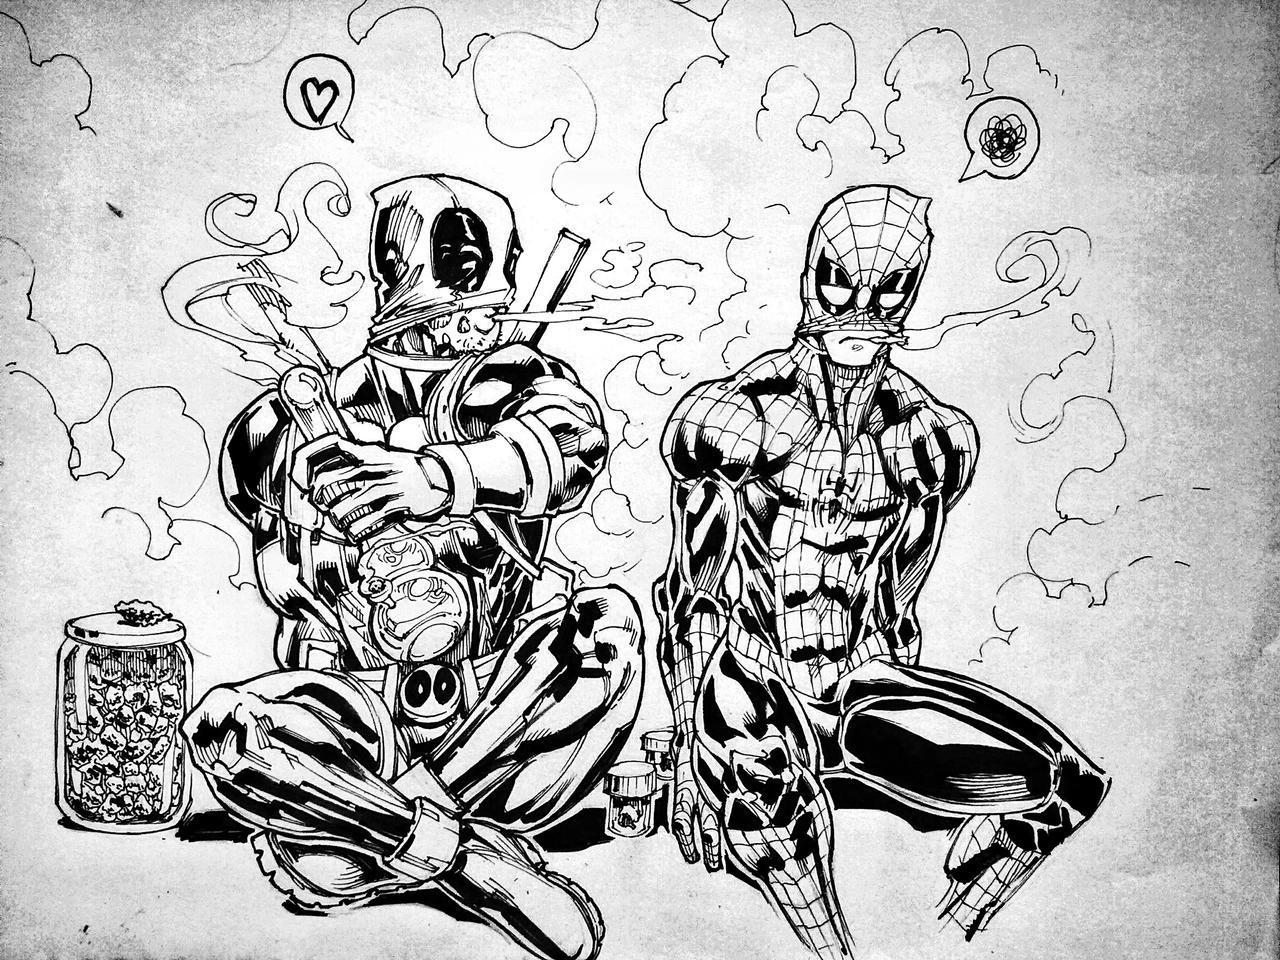 Man Smoking Weed Drawing Deadpool And Spidey Smoke